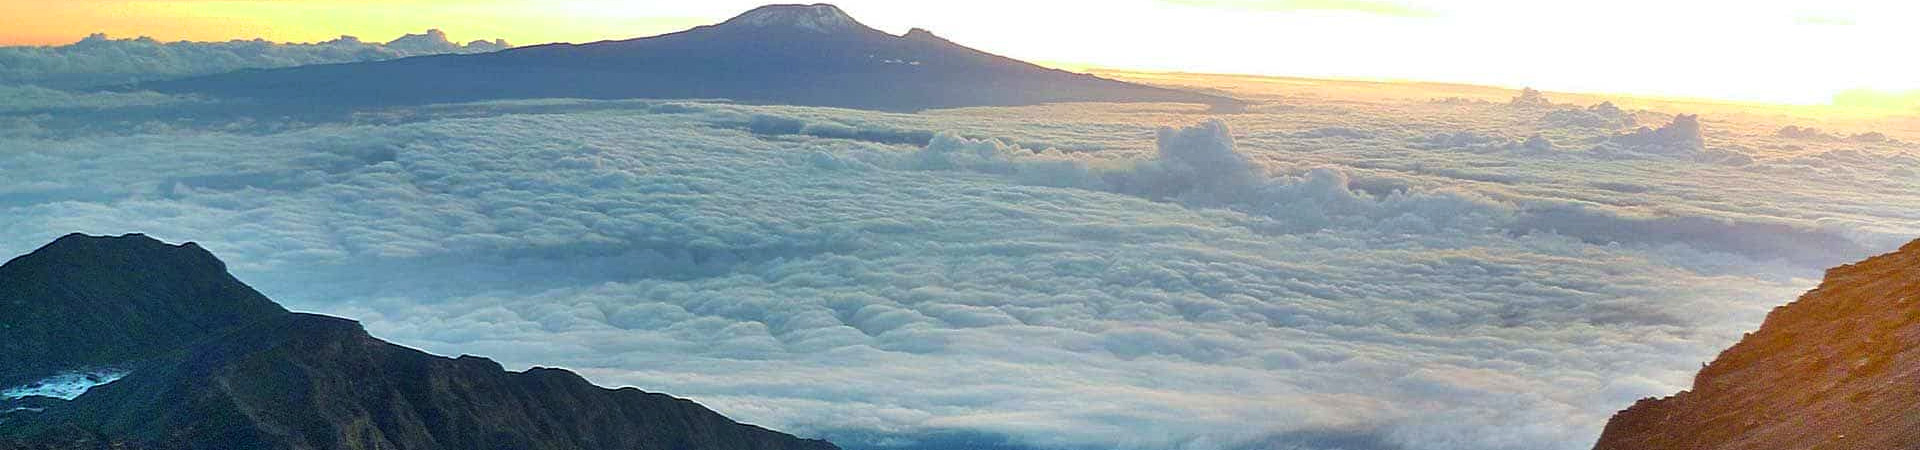 Mount-Meru-National-Park